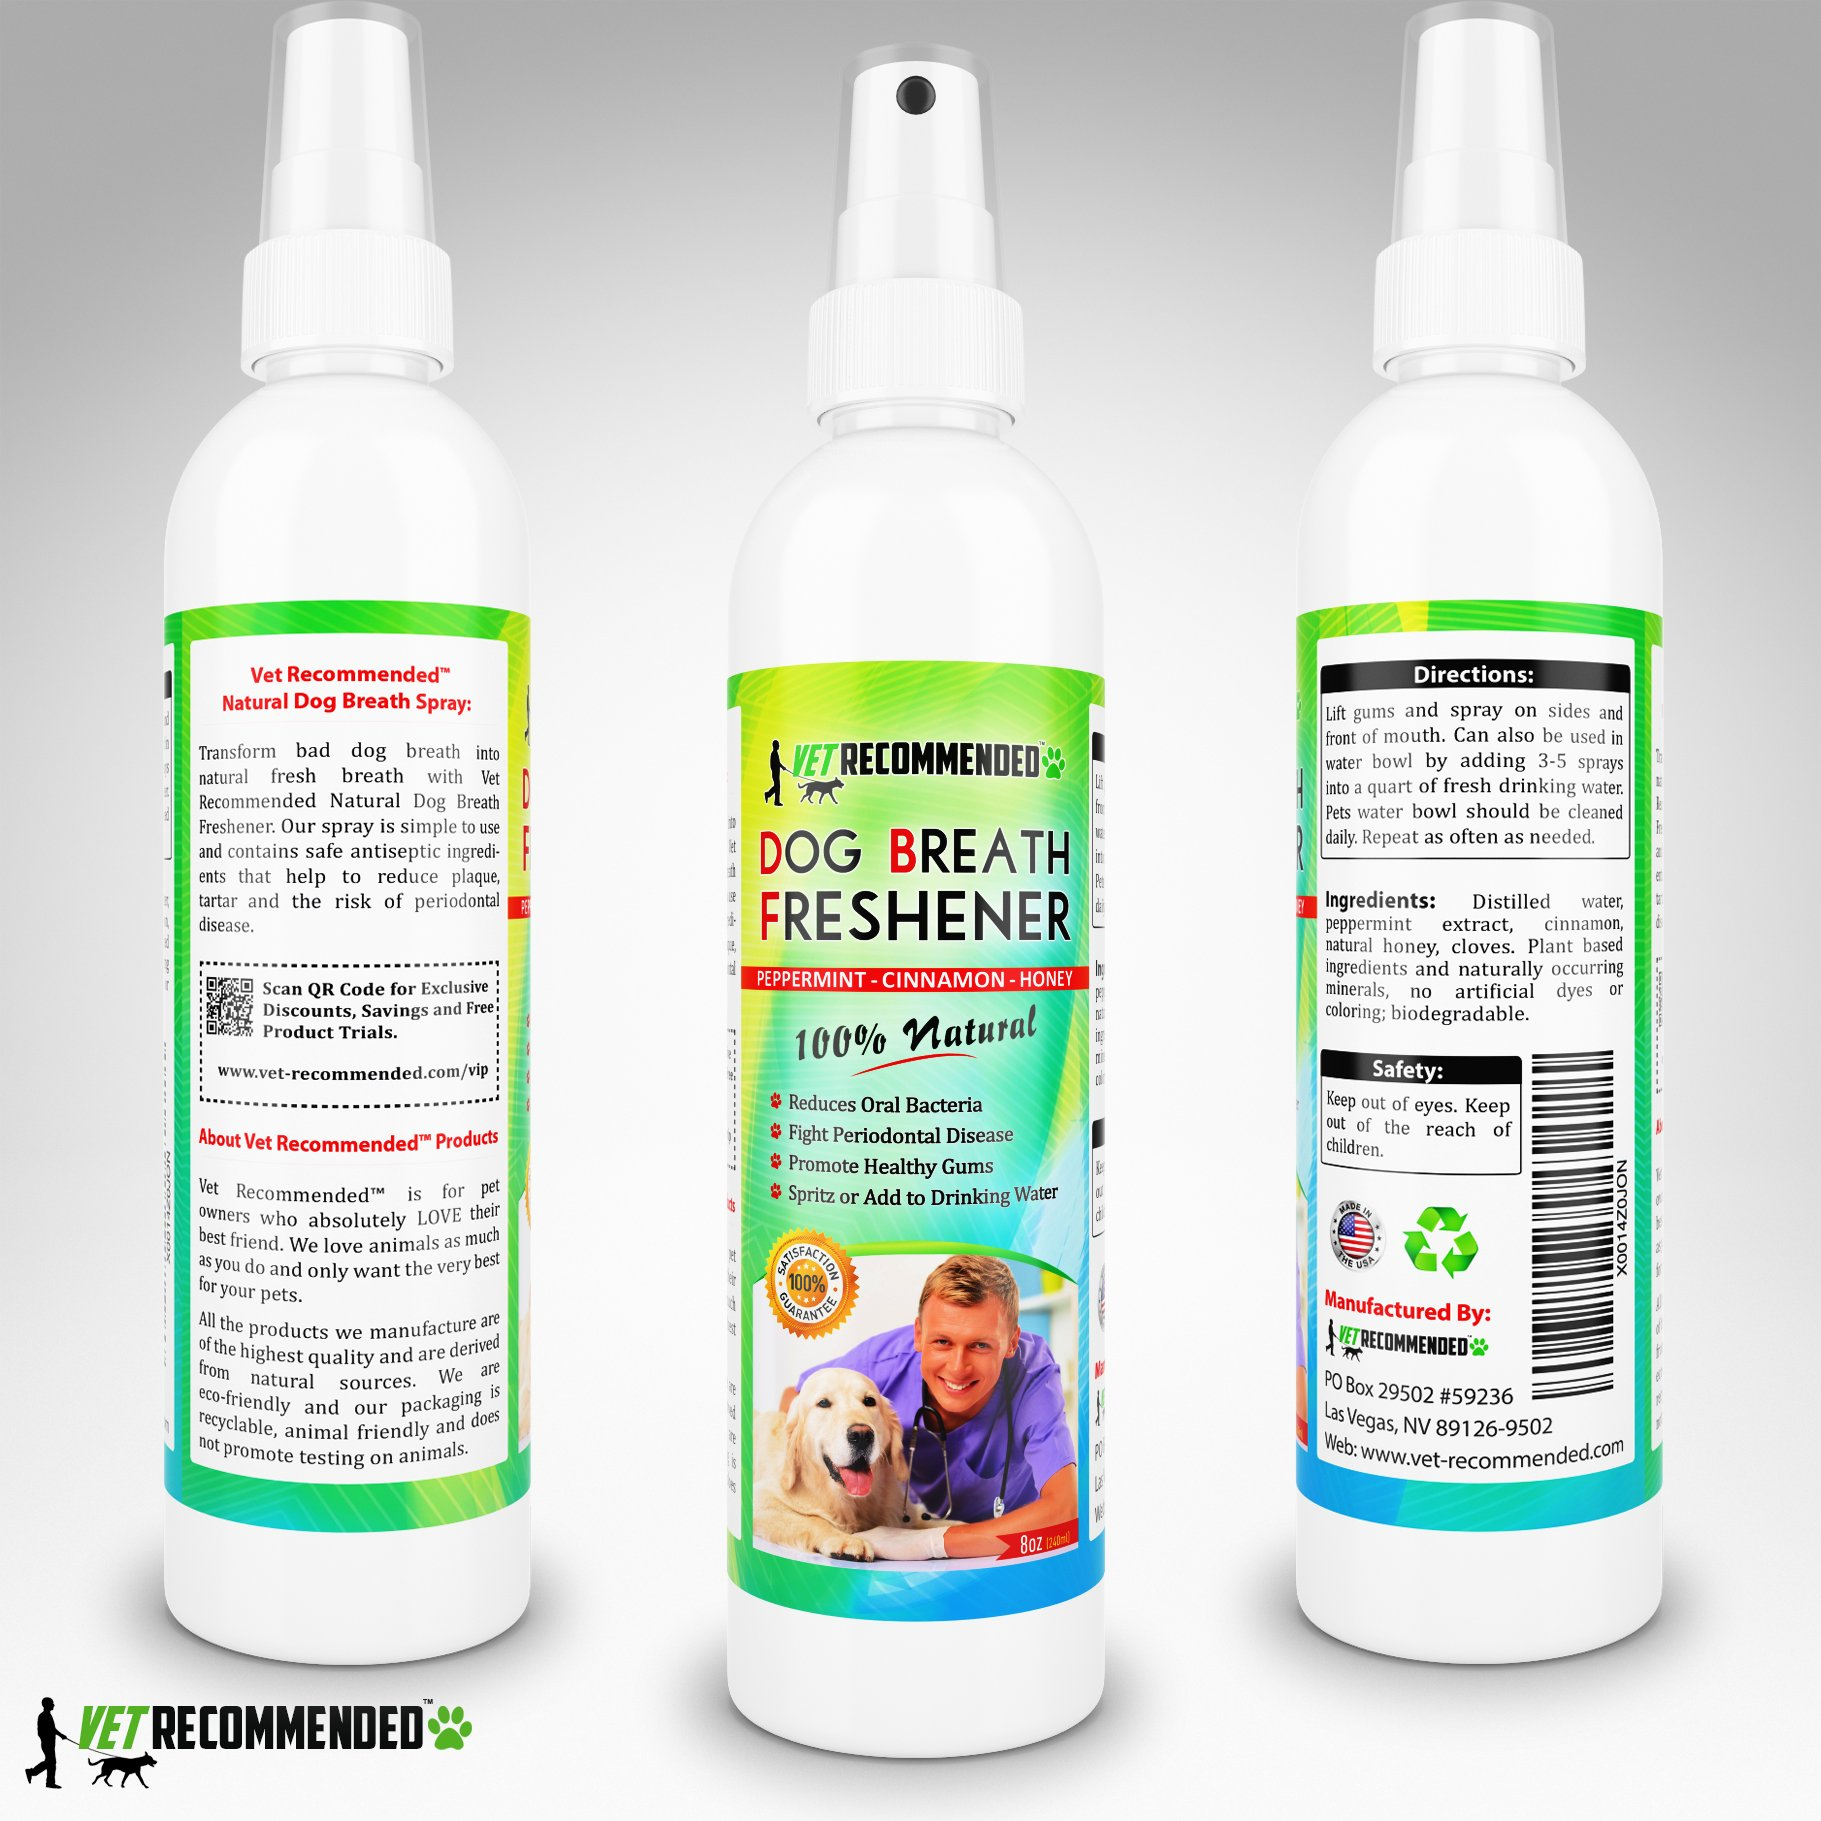 Vet Recommended Dog Breath Freshener & Pet Dental Water Additive (8oz/240ml) All Natural - Perfect for Bad Dog Breath & Dog Teeth Spray. Spray in Mouth or Add to Pet's Drinking Water. USA Made. by Vet Recommended (Image #5)